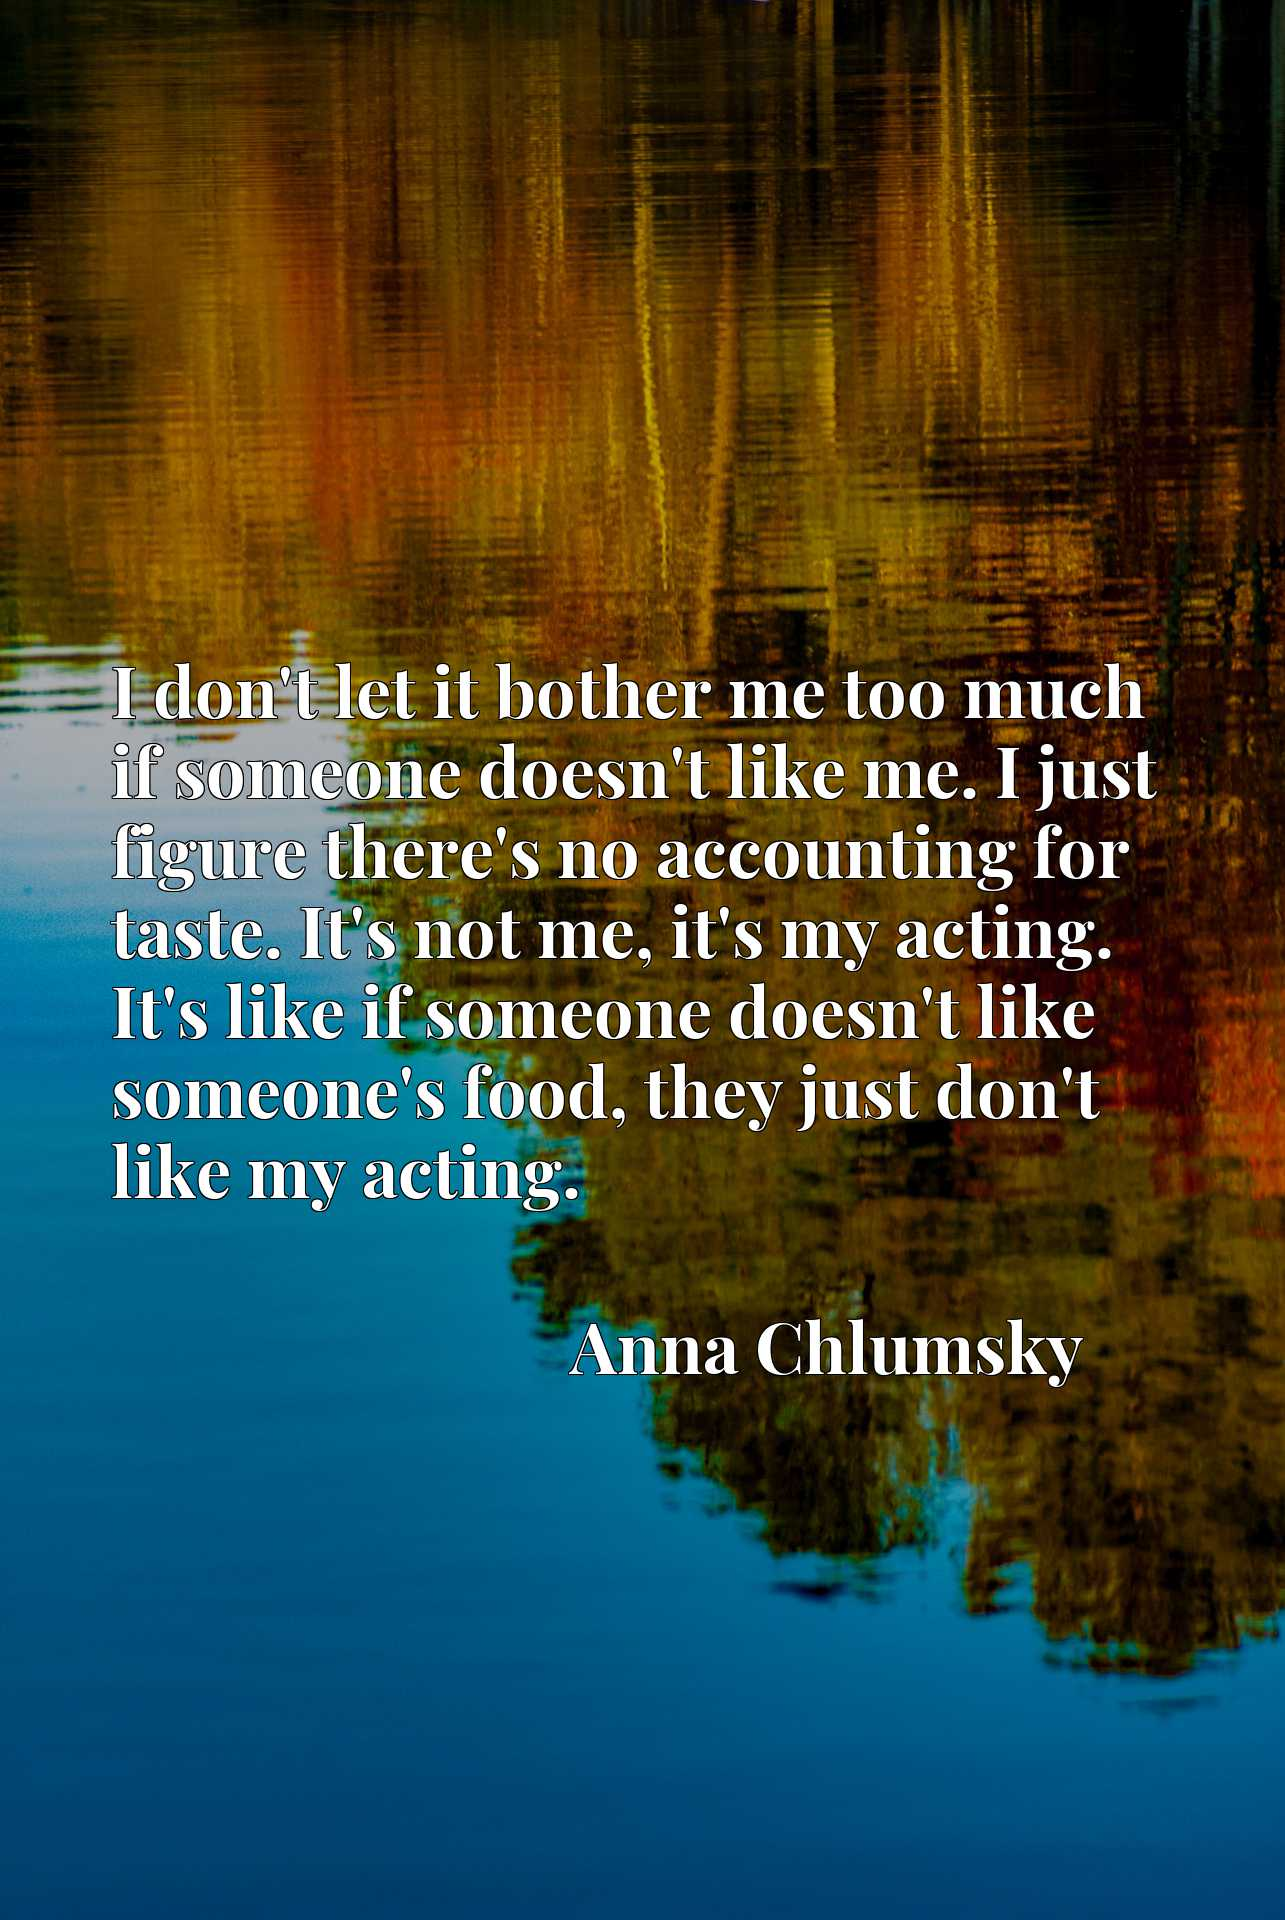 I don't let it bother me too much if someone doesn't like me. I just figure there's no accounting for taste. It's not me, it's my acting. It's like if someone doesn't like someone's food, they just don't like my acting.